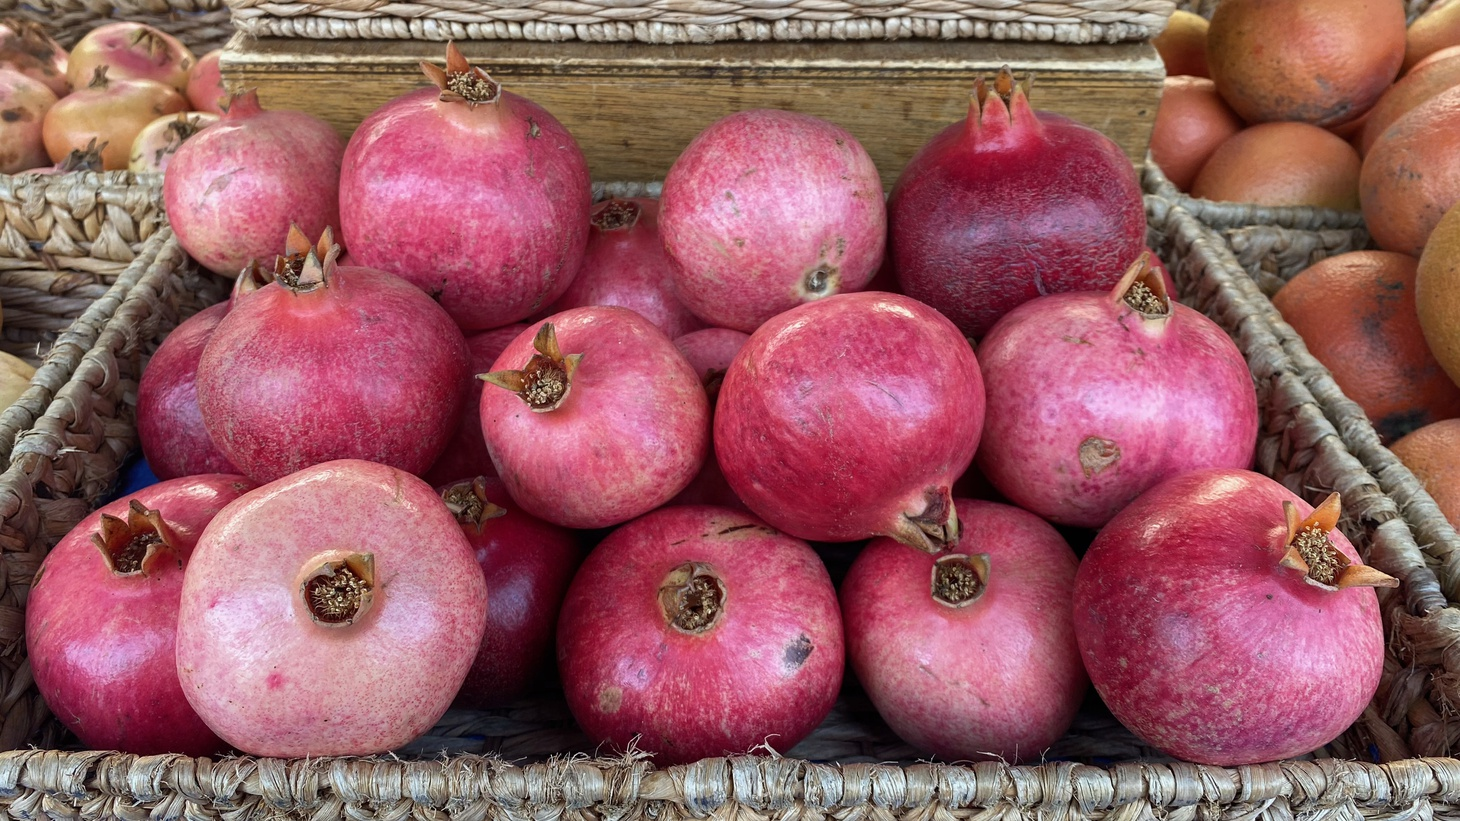 Laura Ramierz of JJ's Lone Daughter Ranch has red and pink varieties of pomegranates, which she suggests using in fizzy cocktails.